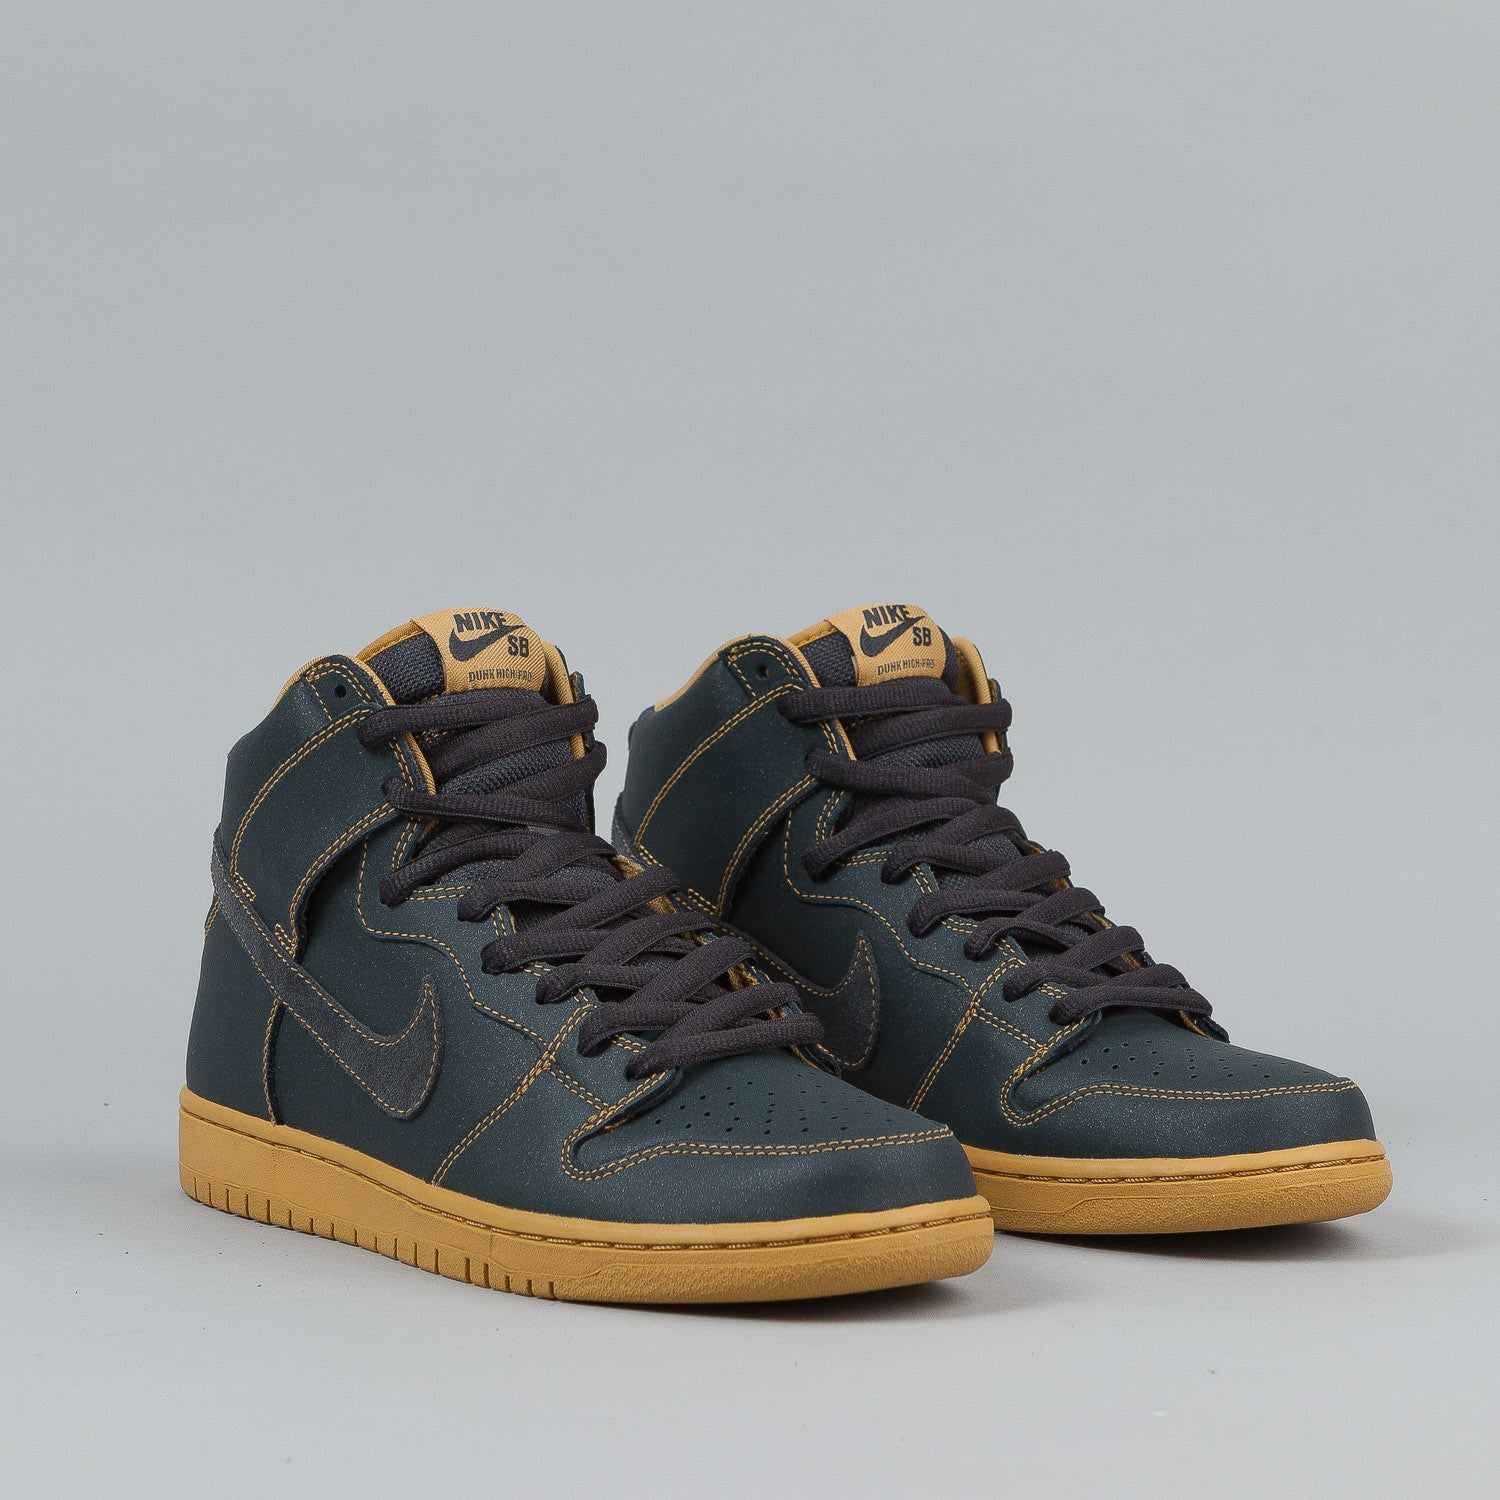 Nike SB Dunk High Pro Shoes - Anthracite / Anthracite / Golden Straw